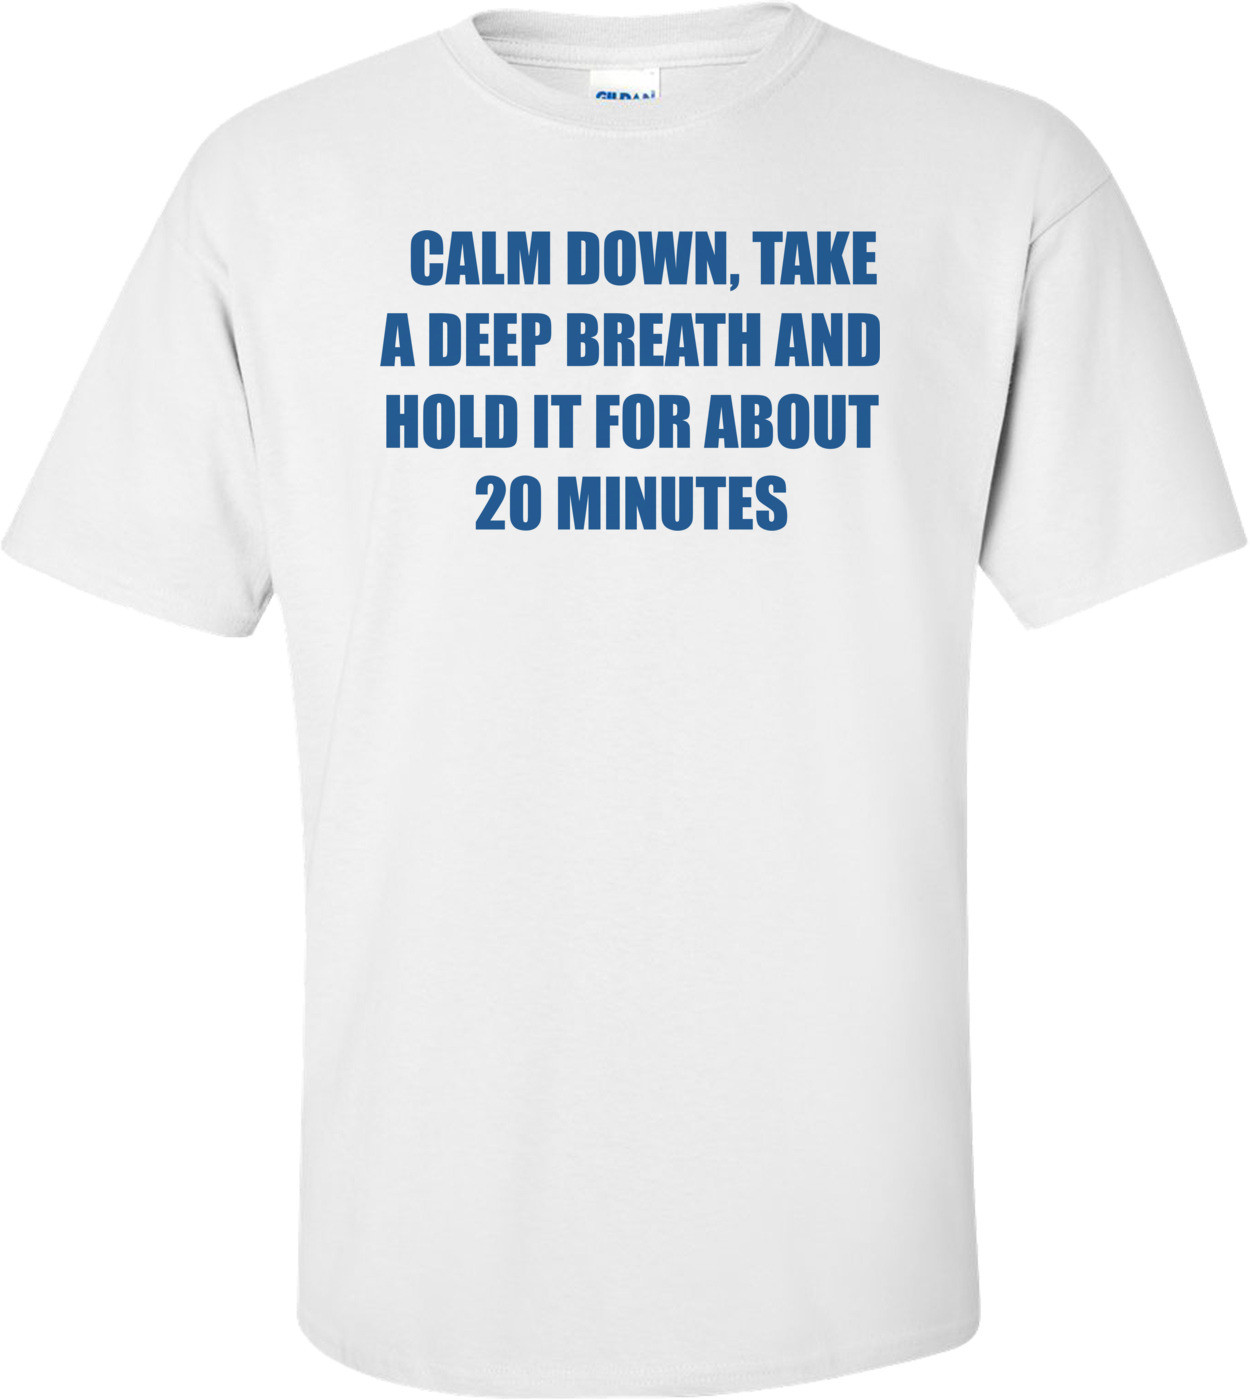 CALM DOWN, TAKE A DEEP BREATH AND HOLD IT FOR ABOUT 20 MINUTES Shirt